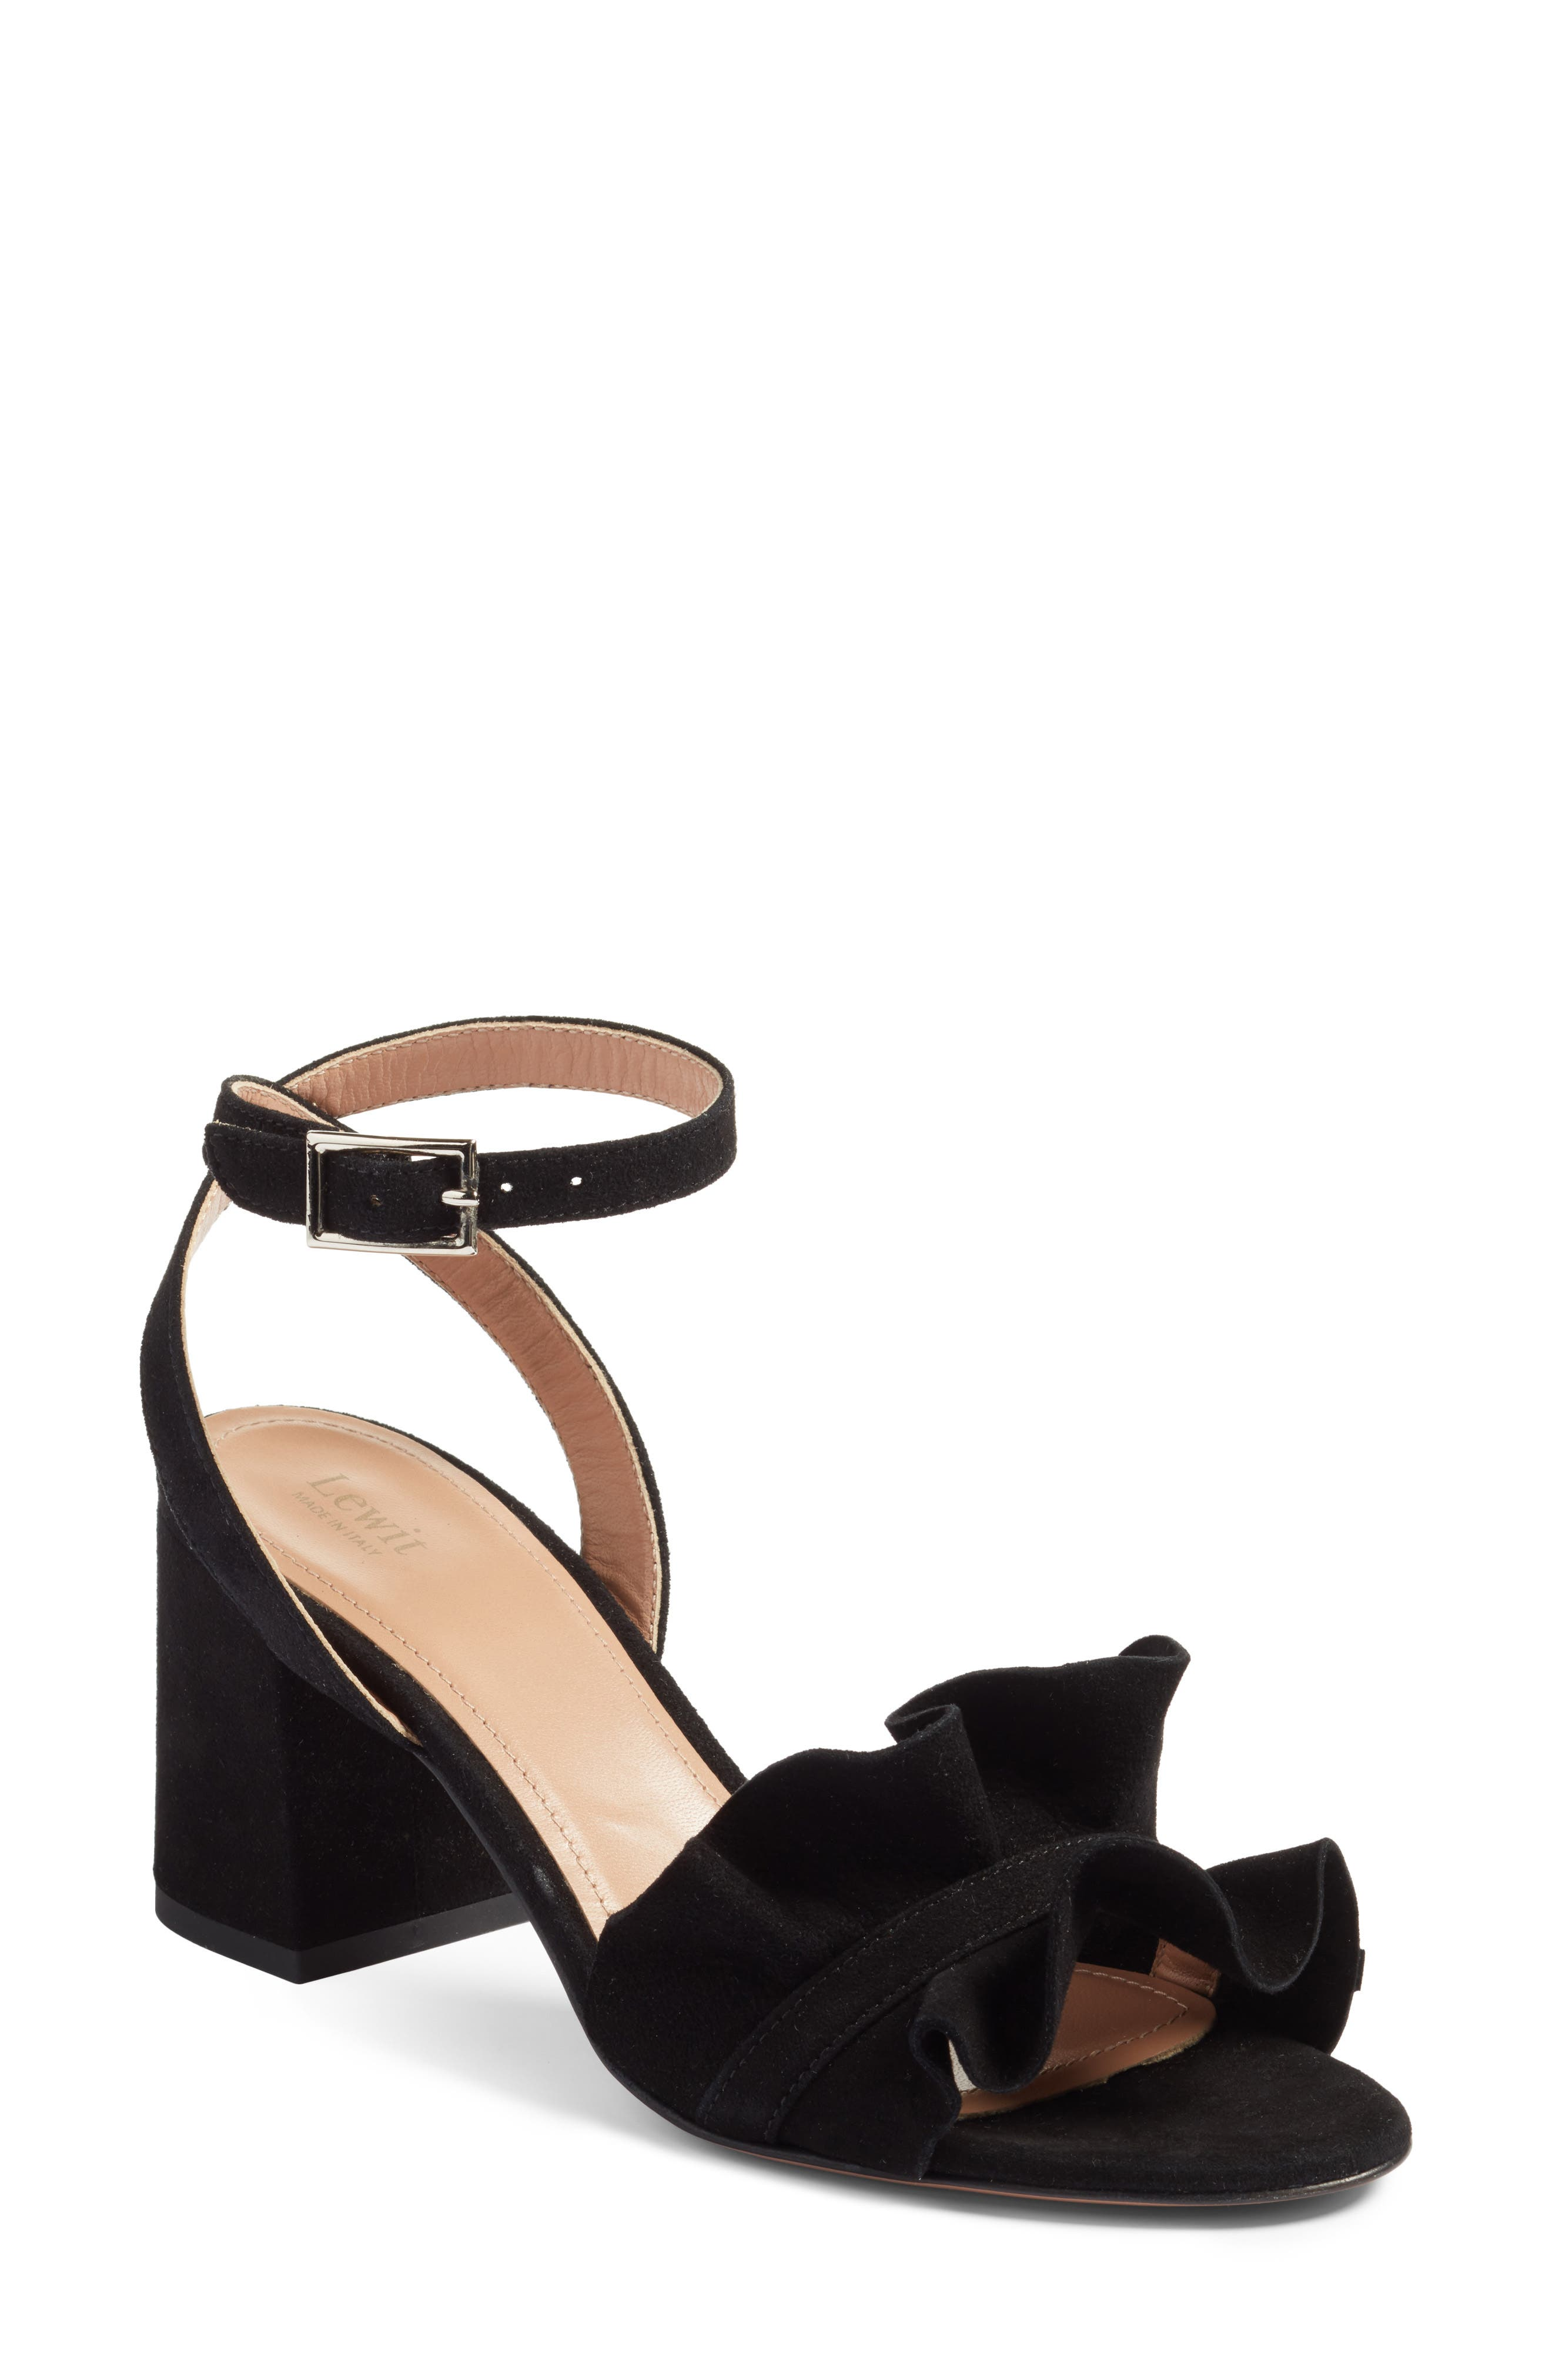 Main Image - Lewit Lucina Ankle Strap Sandal (Women)